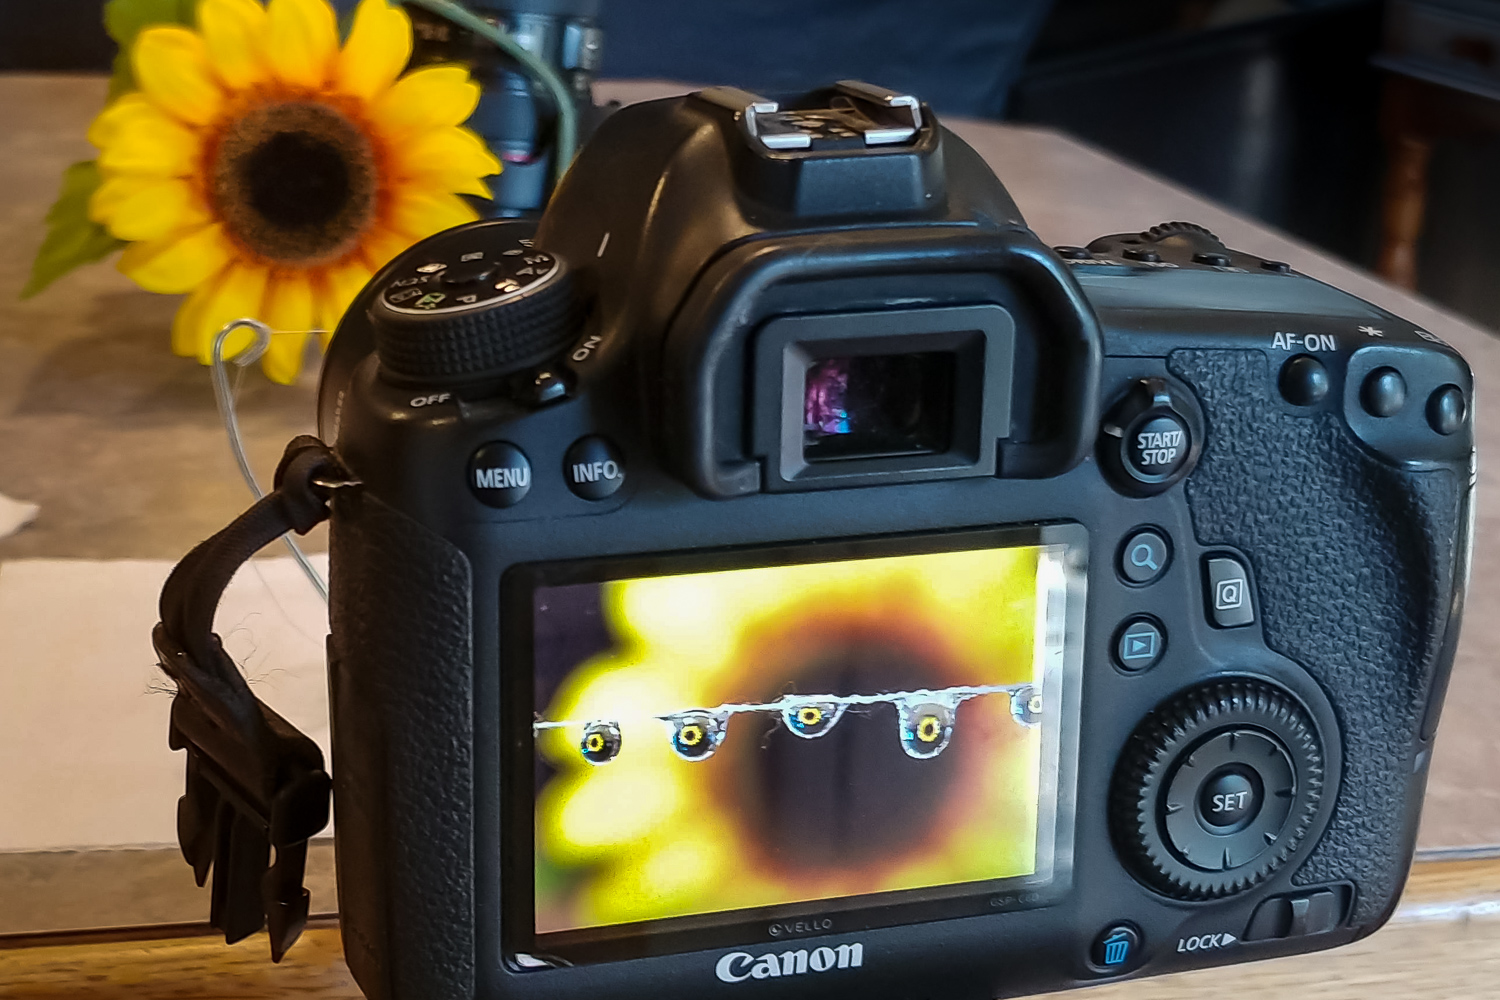 Image: Using the Live View mode of your camera can really help in getting critical focus.